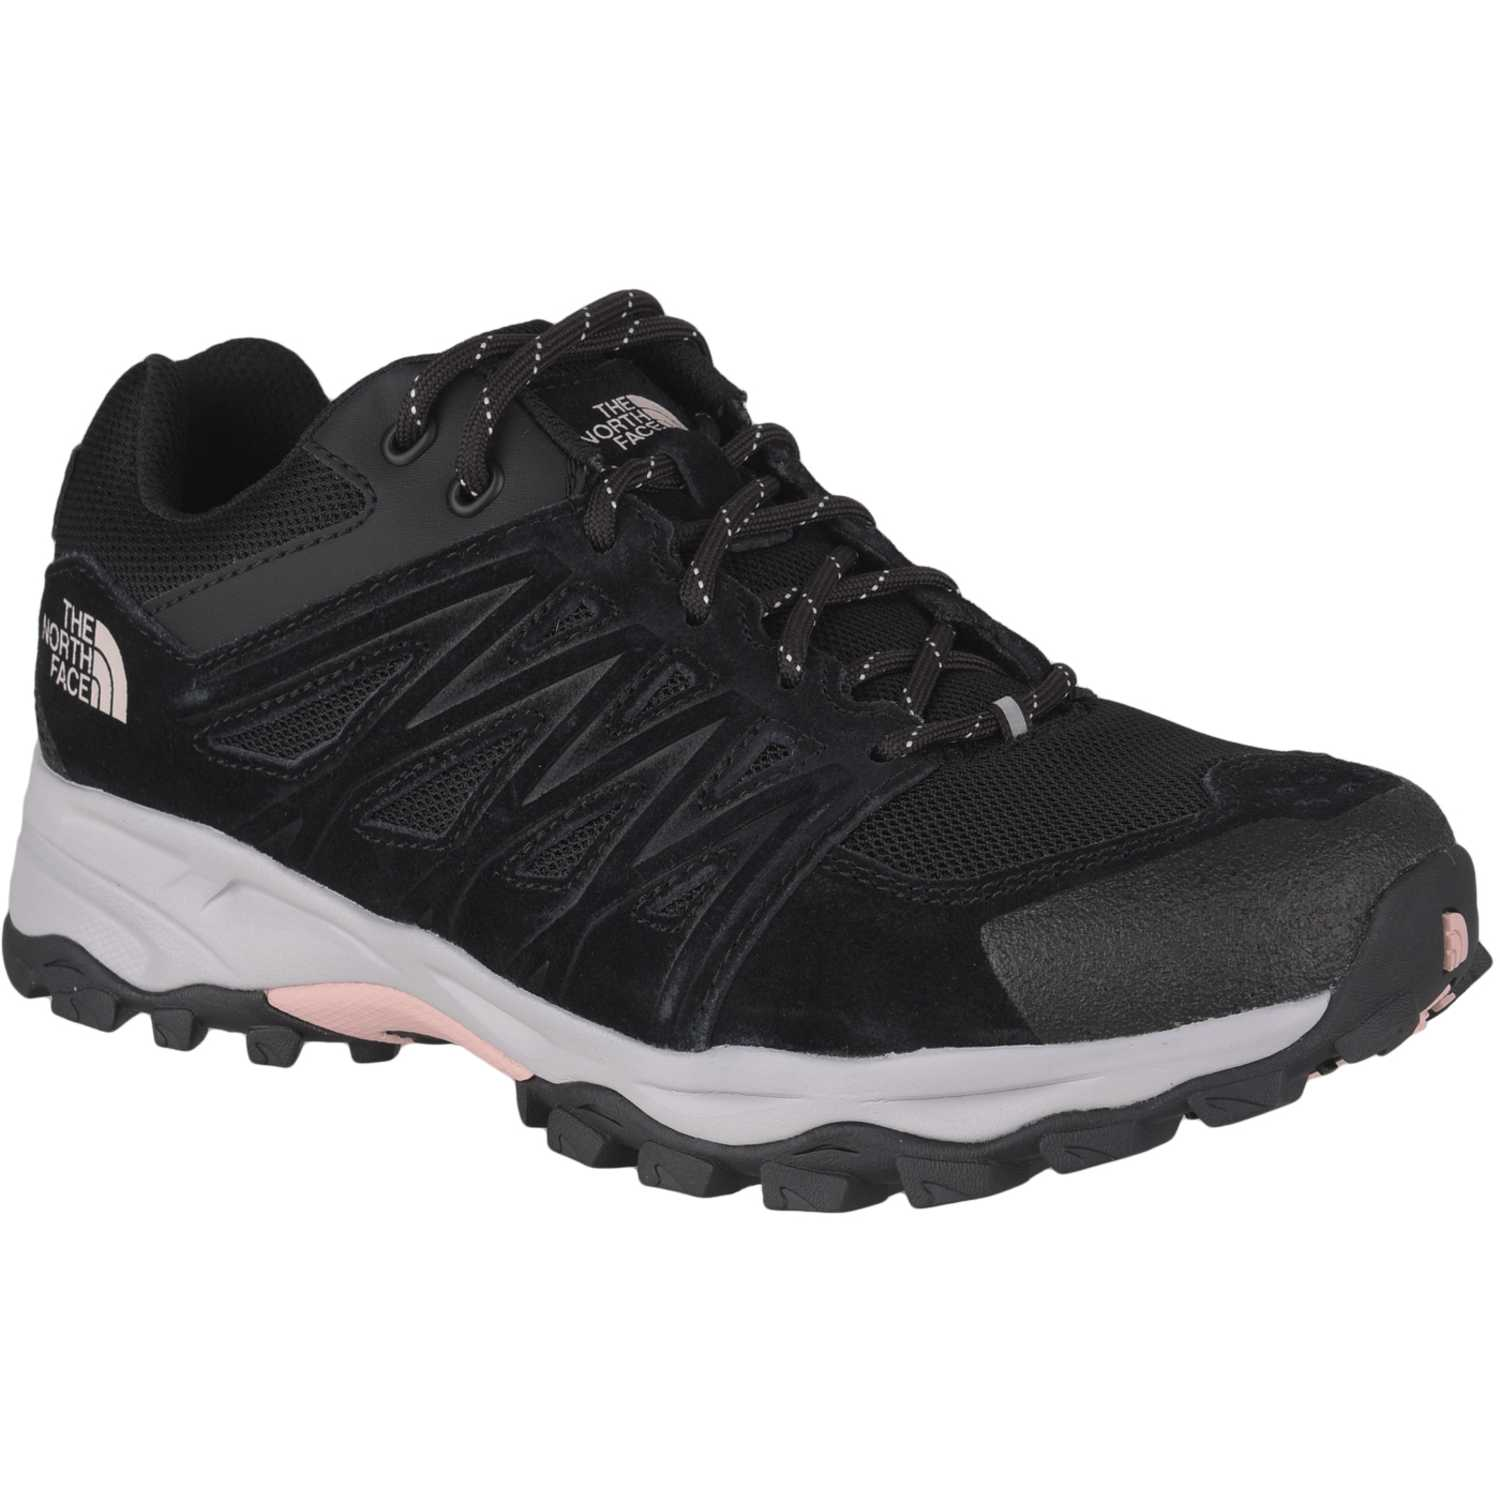 The North Face w truckee Negro / plomo Trail Running